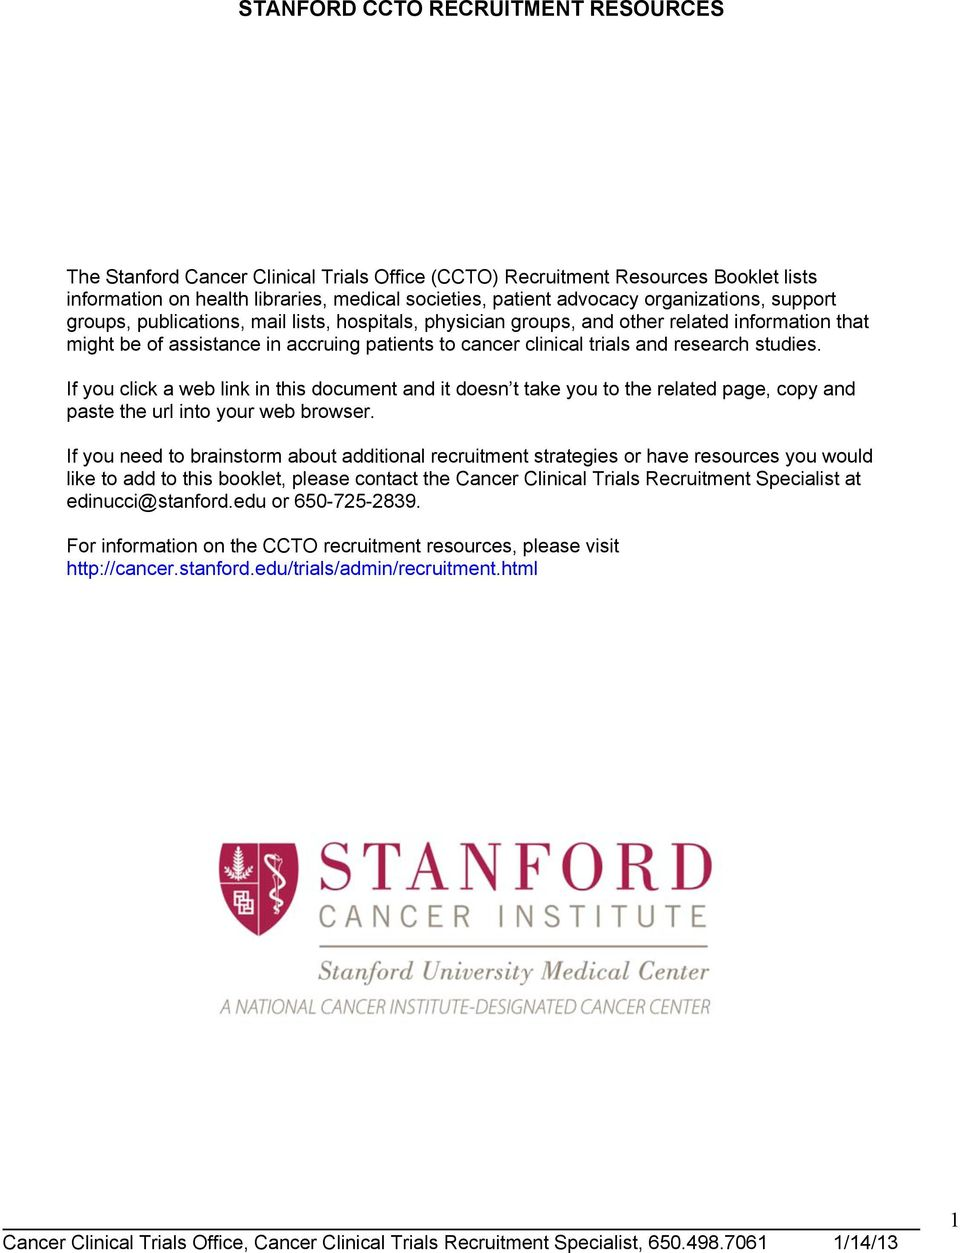 STANFORD CCTO RECRUITMENT RESOURCES - PDF